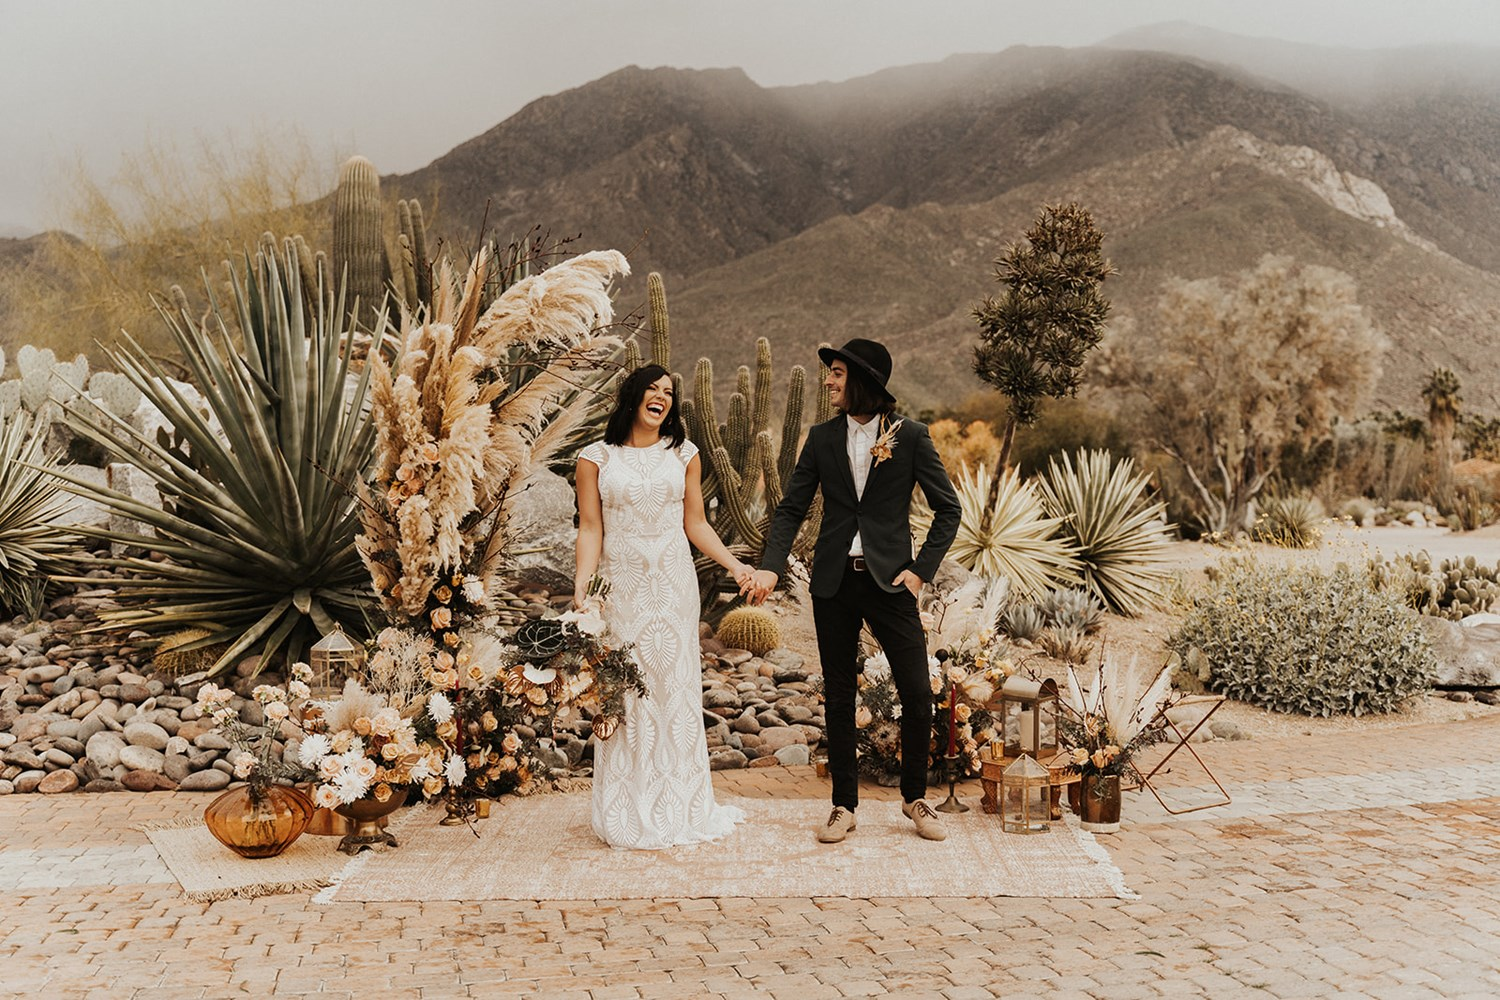 desertshootout_cait_cophoto-0062.jpg Bohemian Palm Springs Wedding Inspiration with a Modern Twist